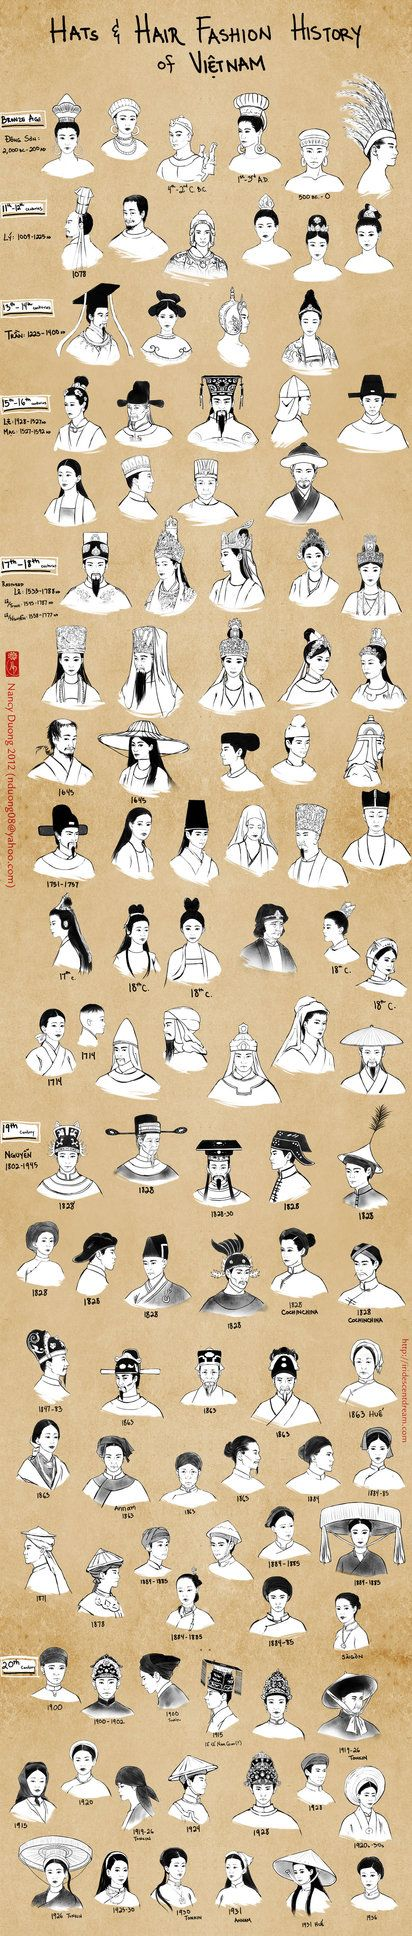 Hats and Hair Fashion History: Vietnam by ~lilsuika on deviantART